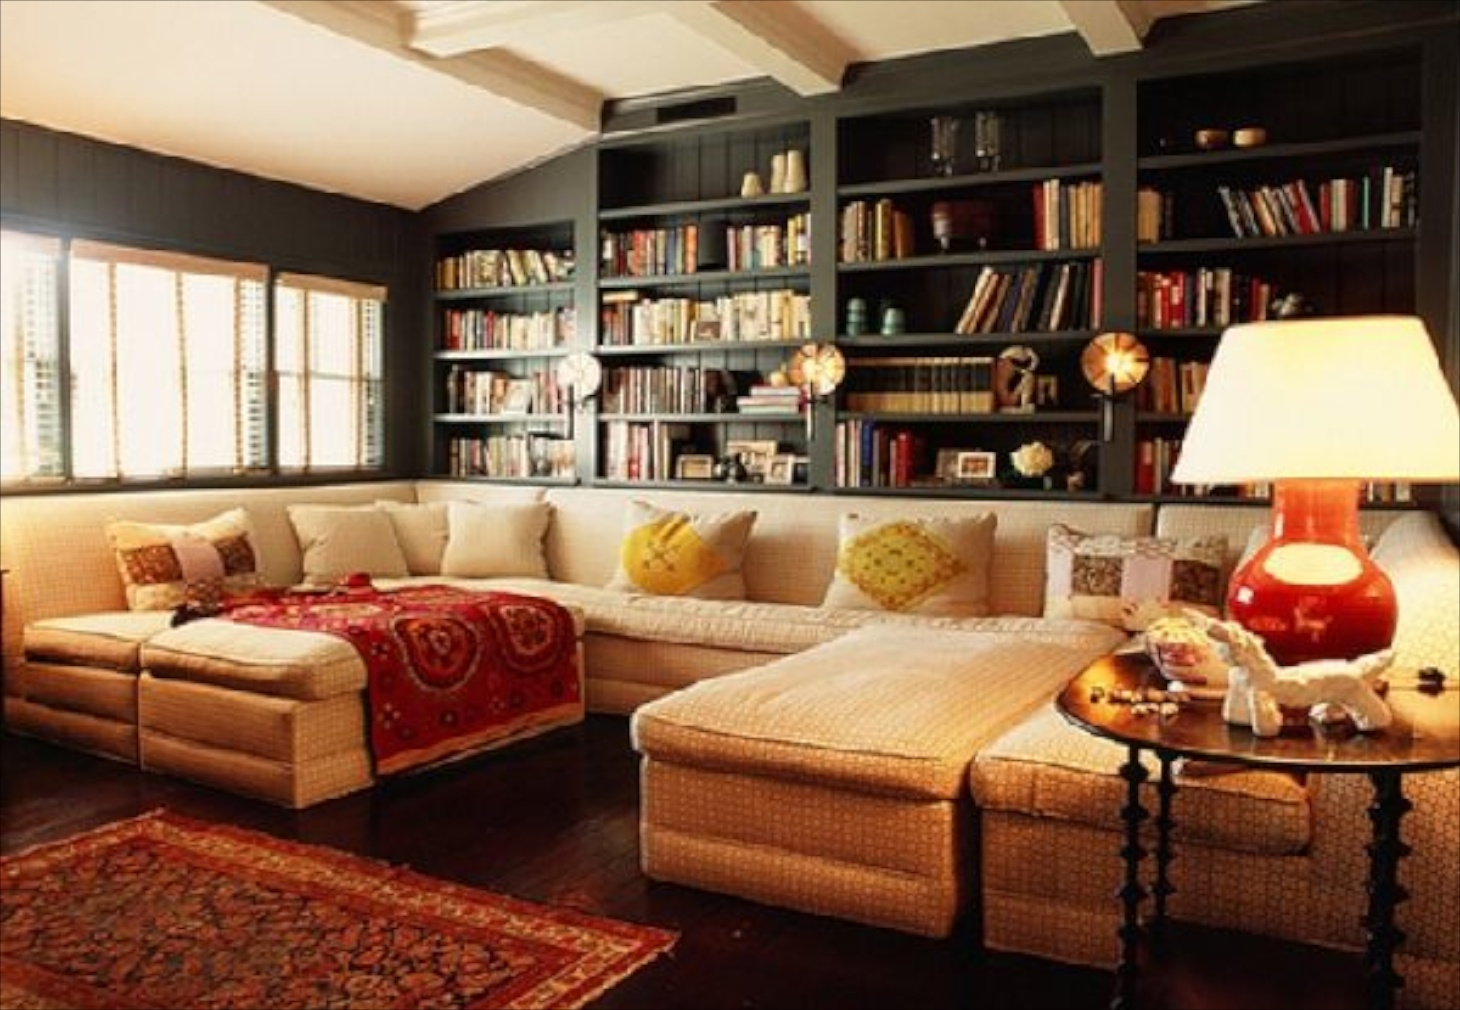 23 Sofas and Bookcase Ideas in Cozy Living Room Design